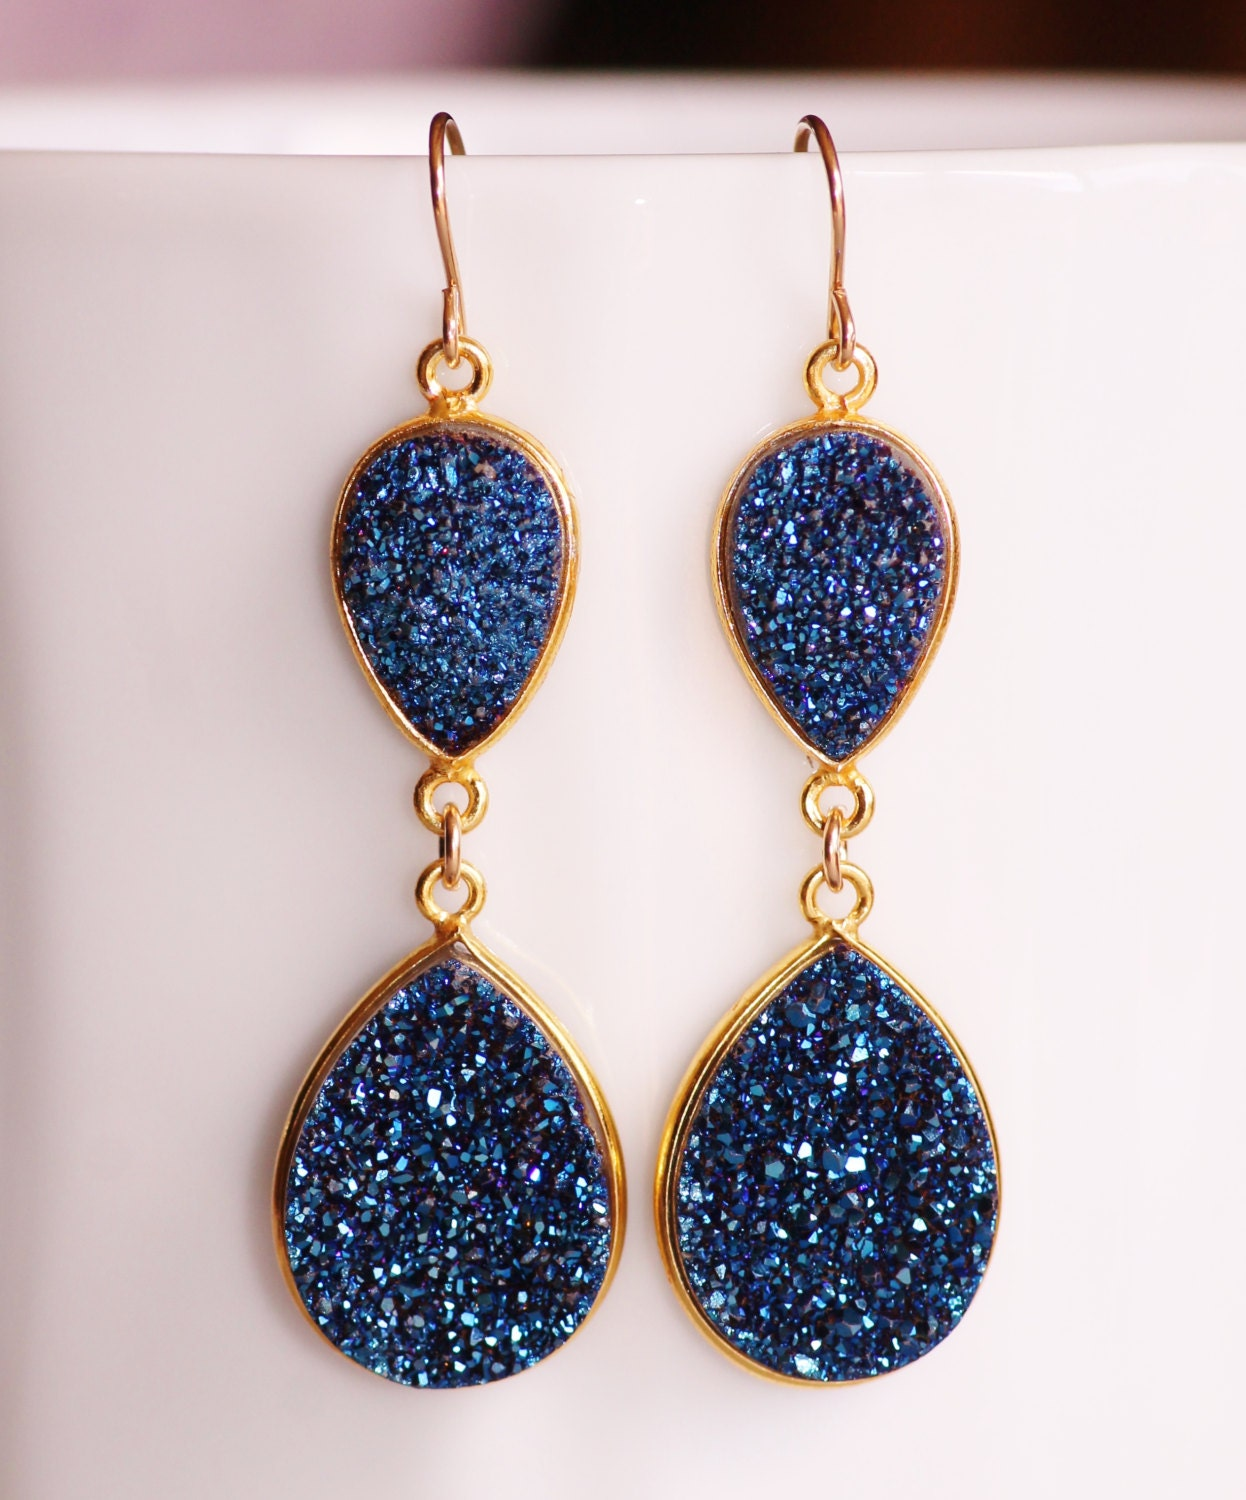 product gemstone blue earrings accessories drop gem fashion oarlly